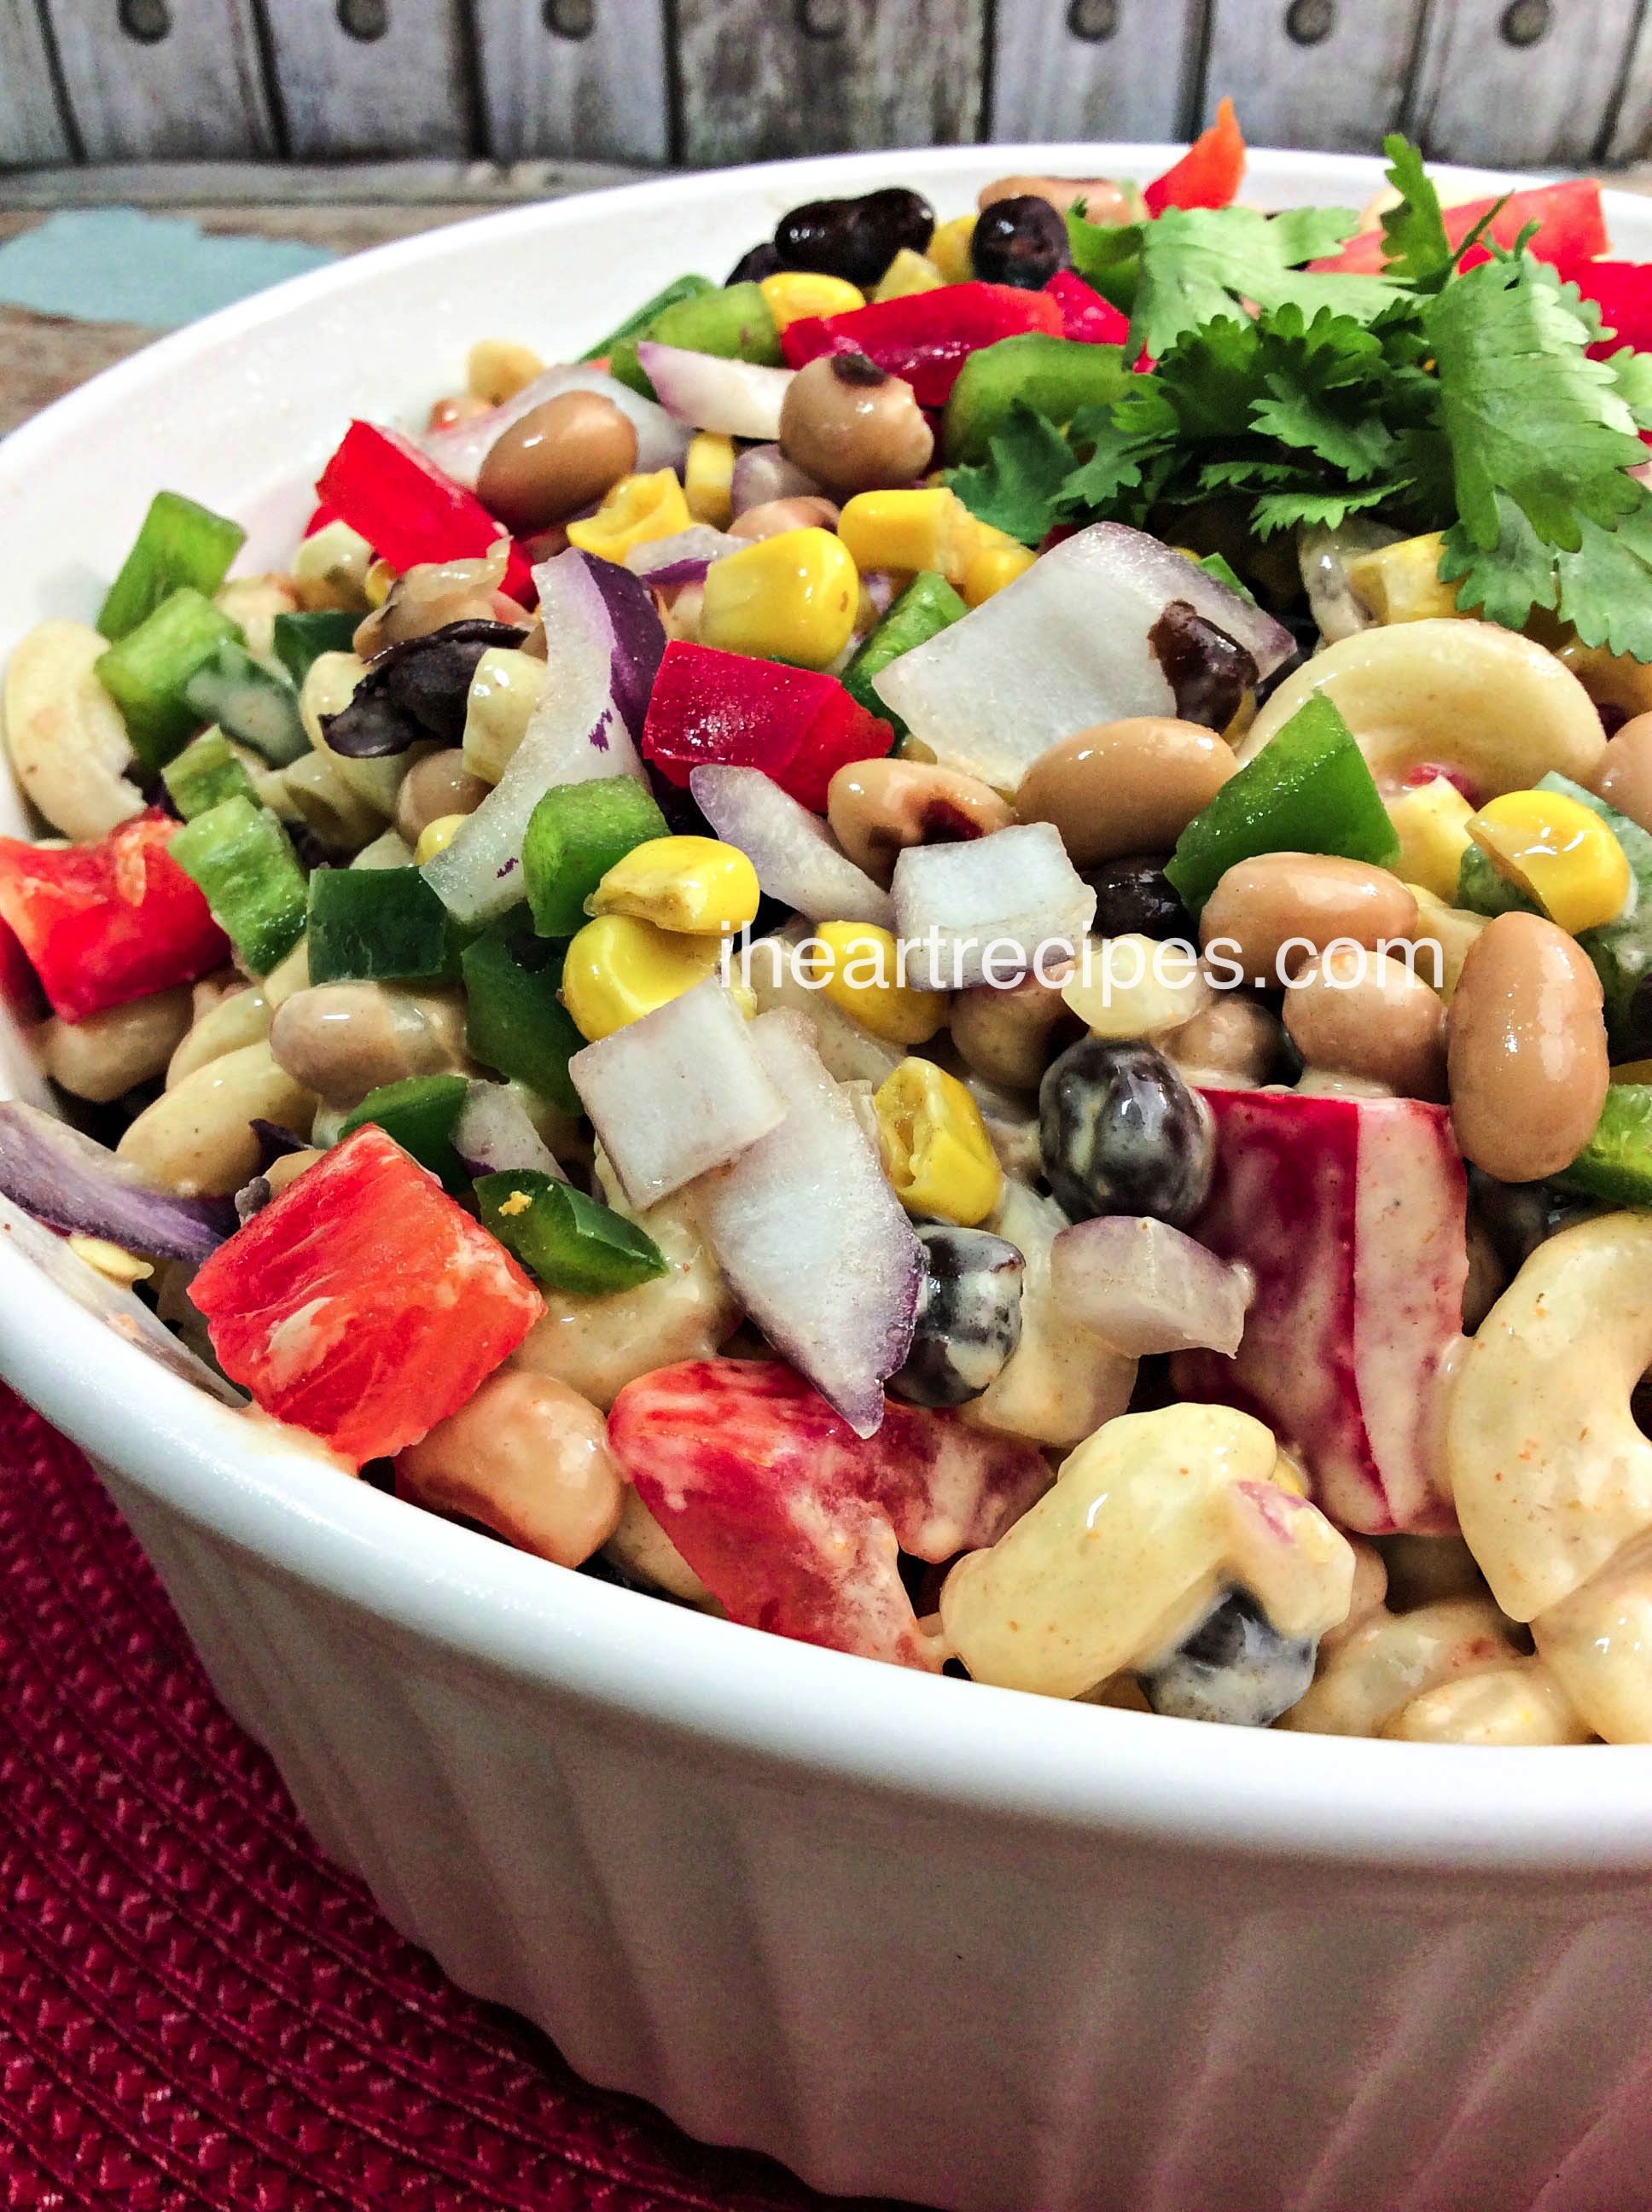 Texas Caviar is a classic southern salad. Toss in macaroni for a perfect summer pasta salad.